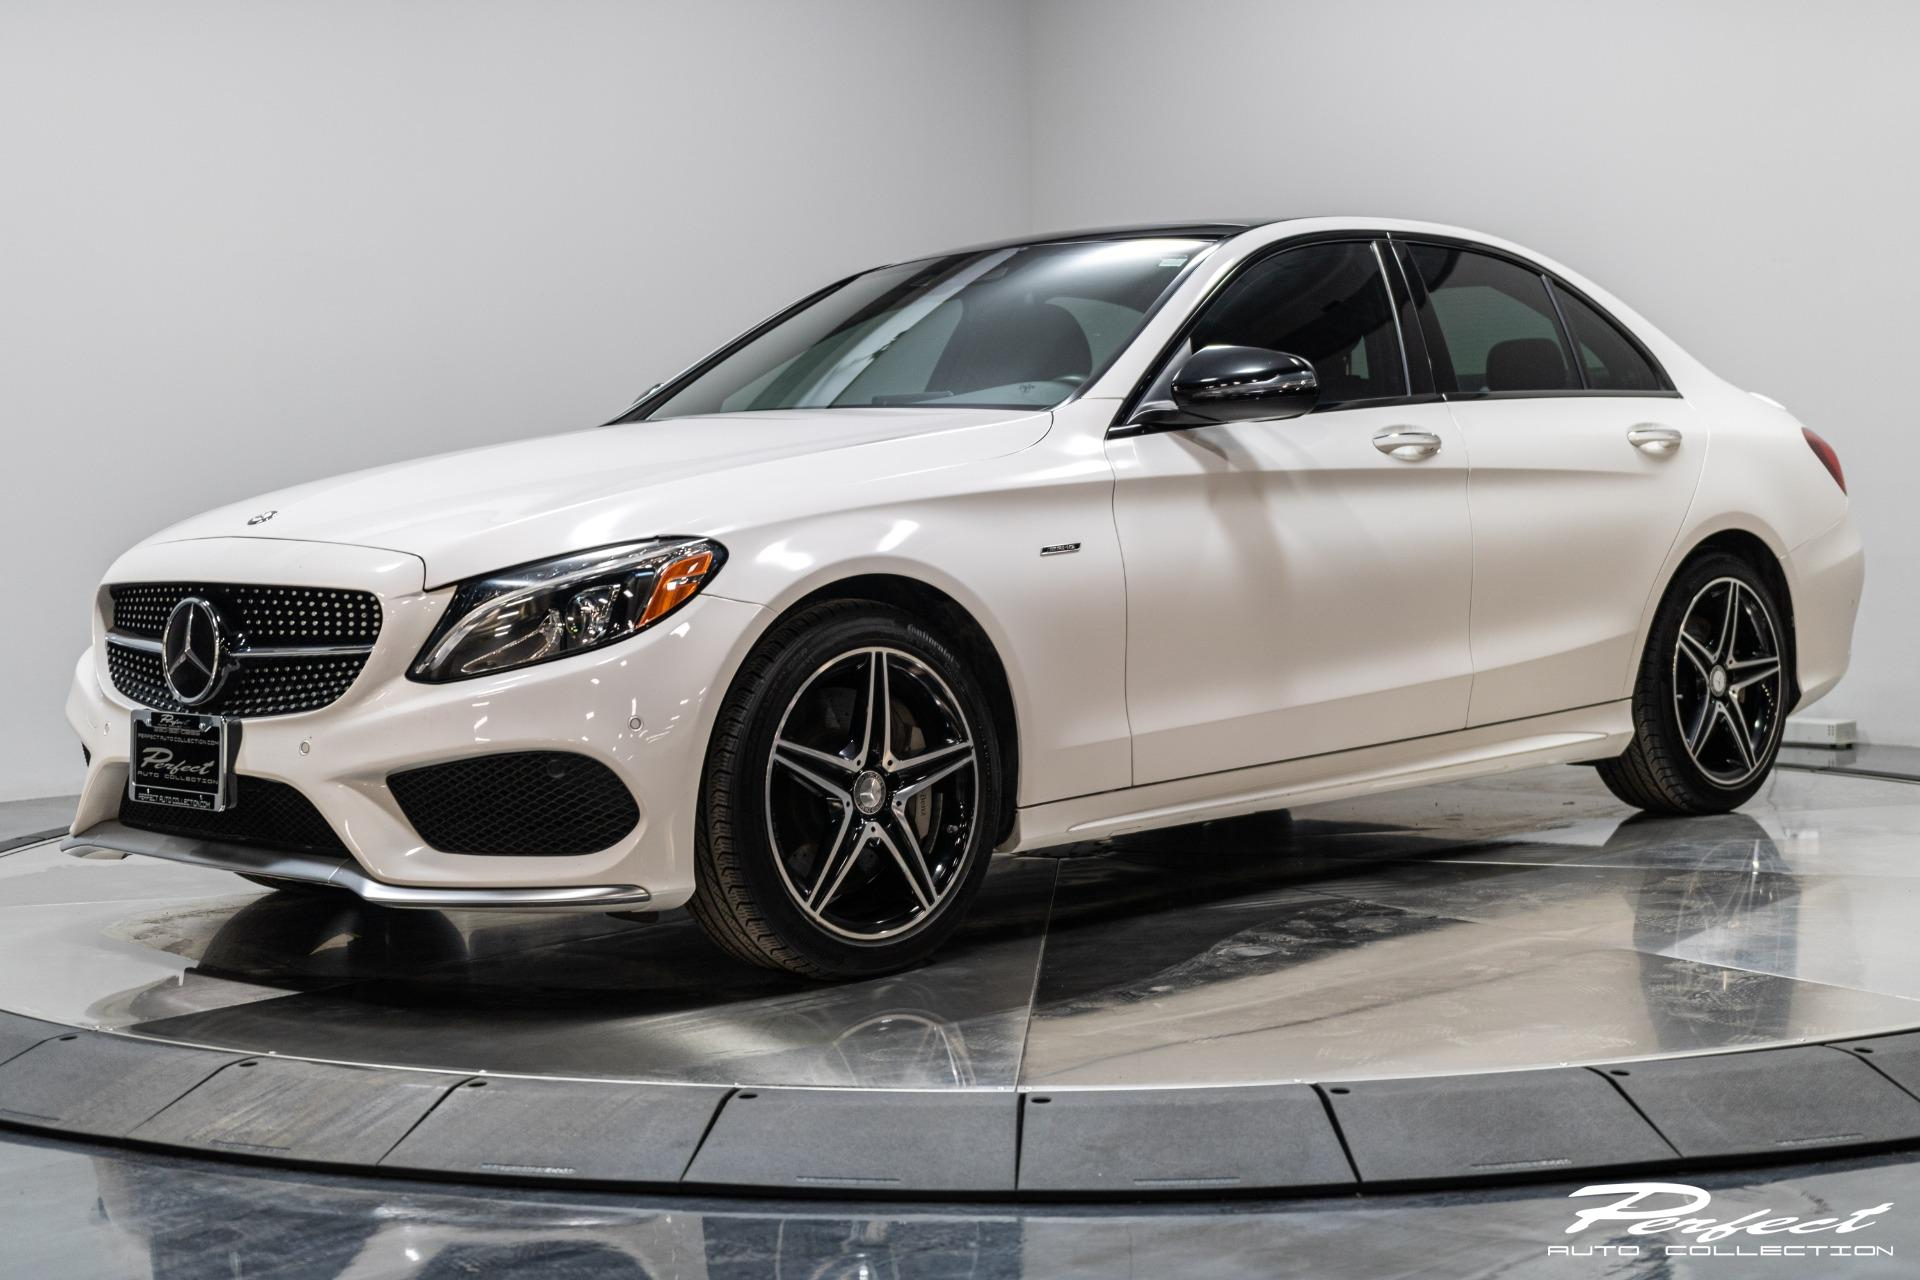 Used 2016 Mercedes-Benz C-Class C 450 AMG for sale Sold at Perfect Auto Collection in Akron OH 44310 1